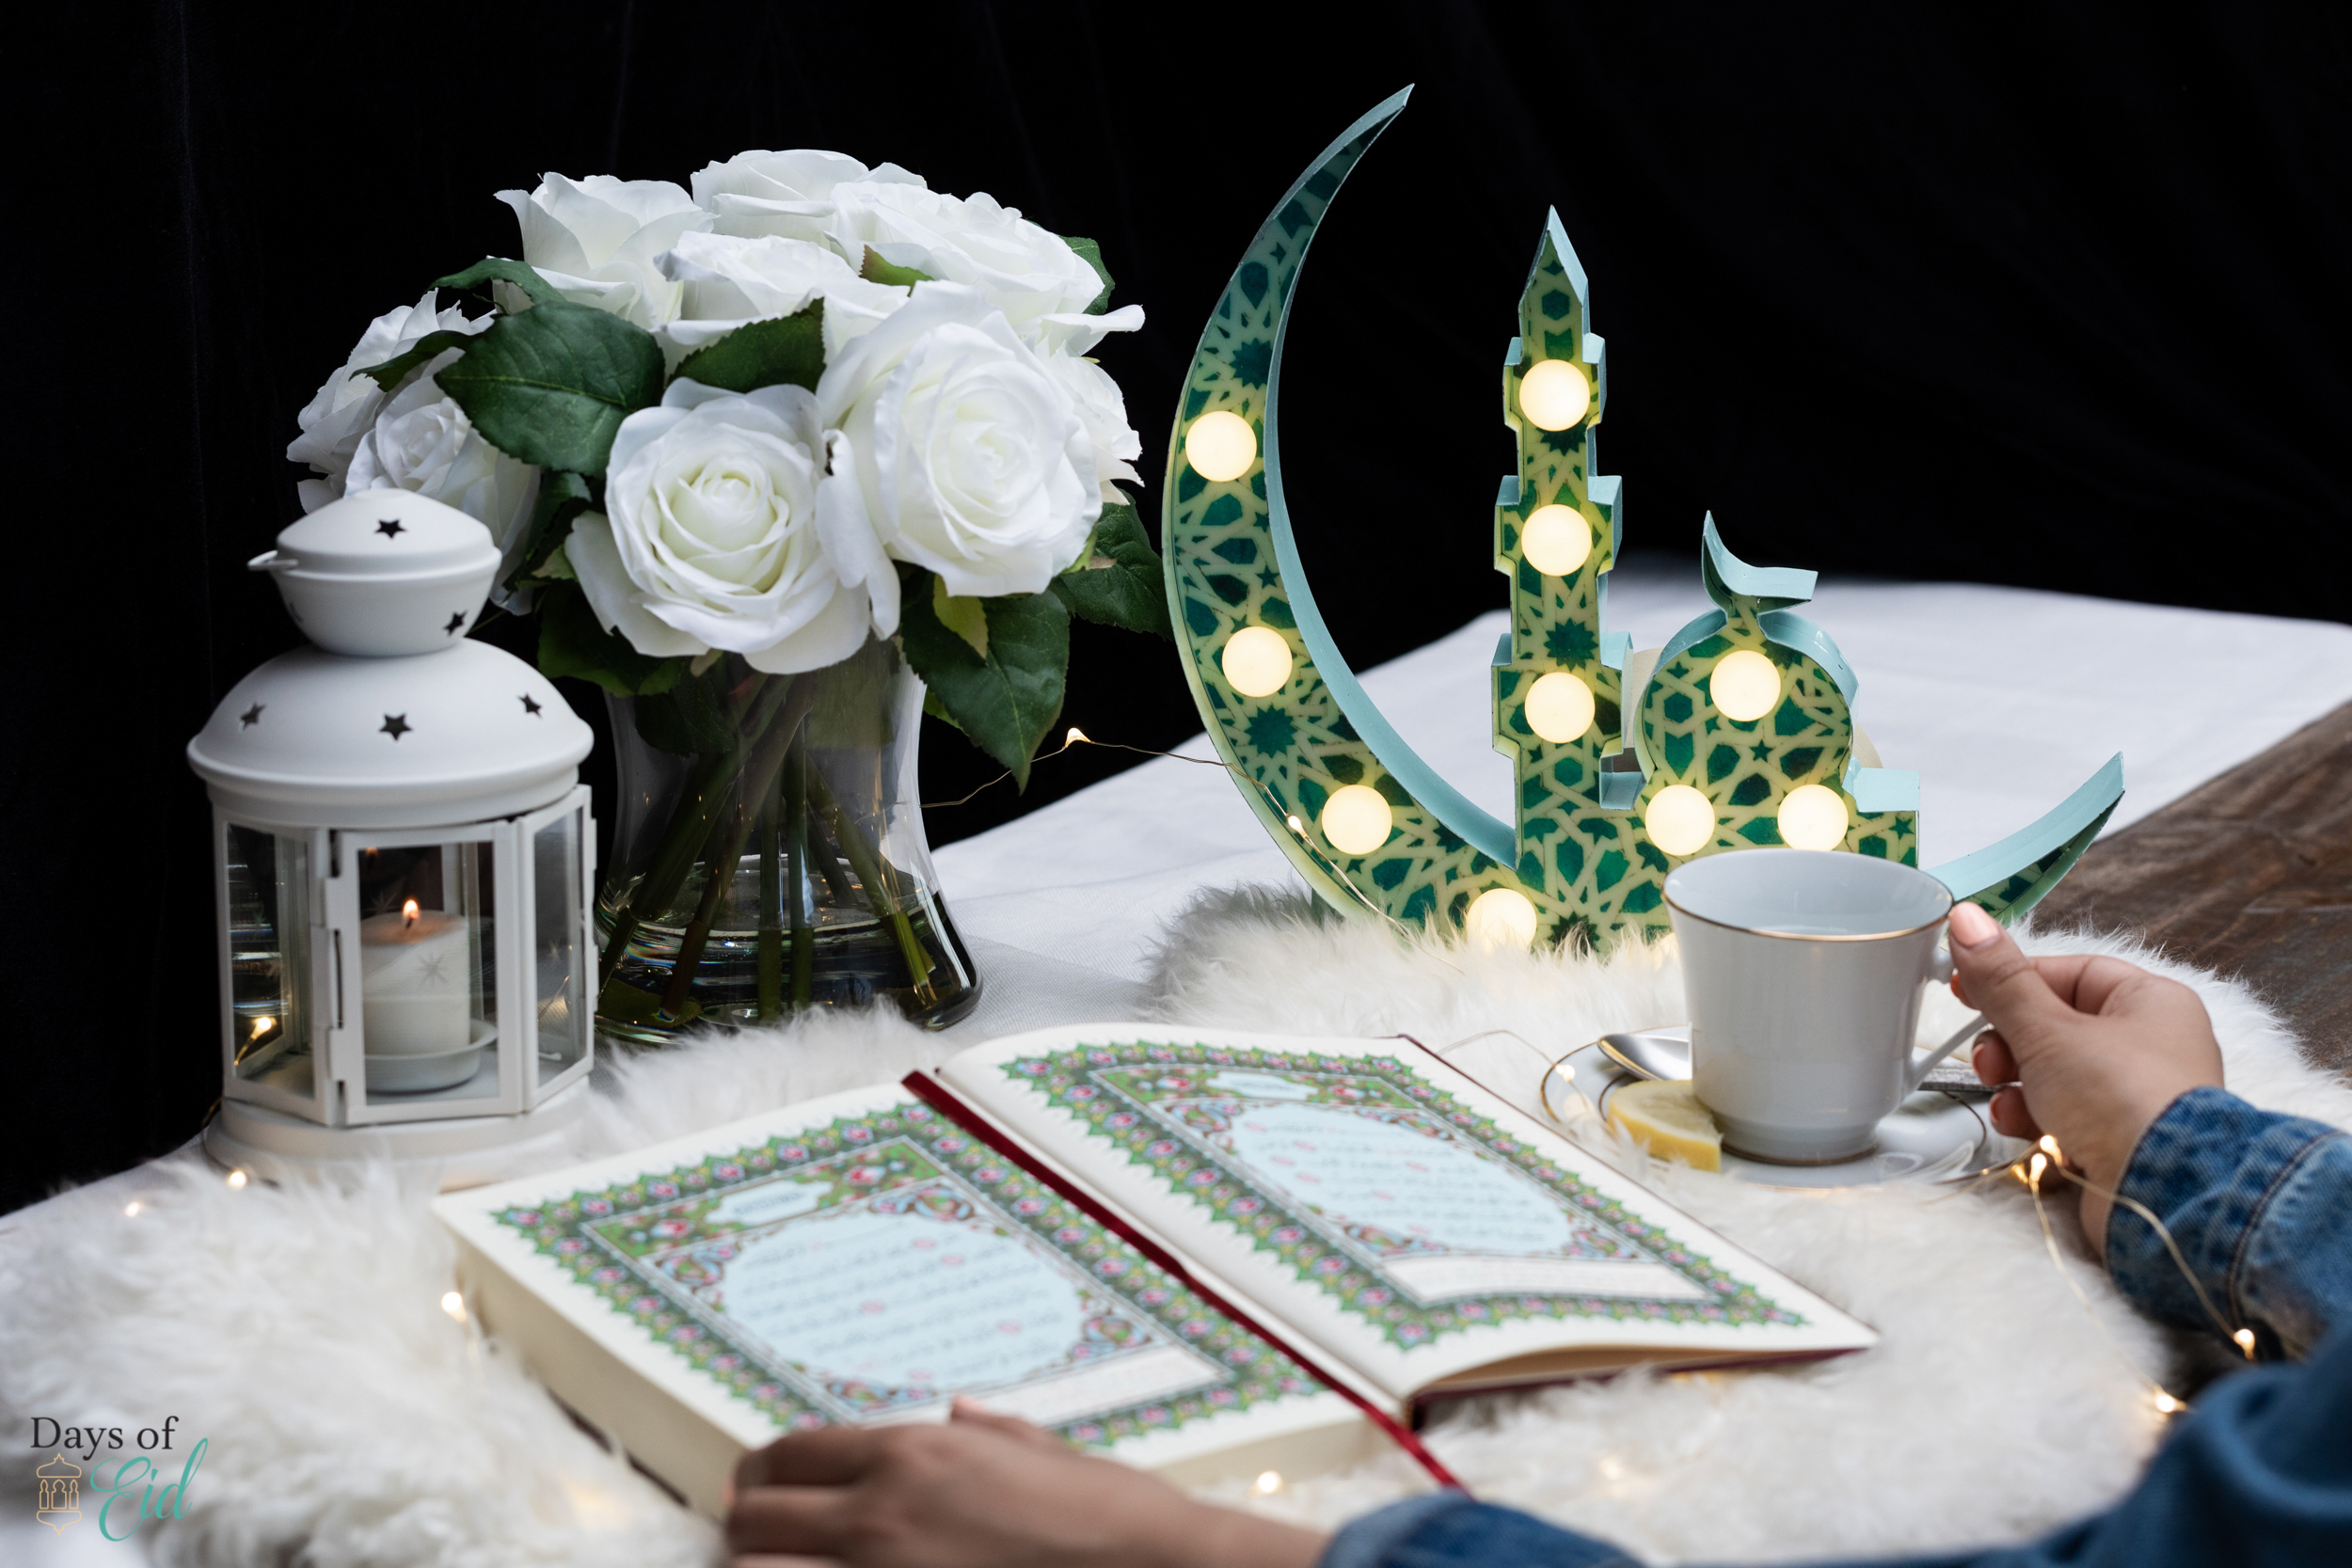 Marquee sign next to an open quran and a cup of tea